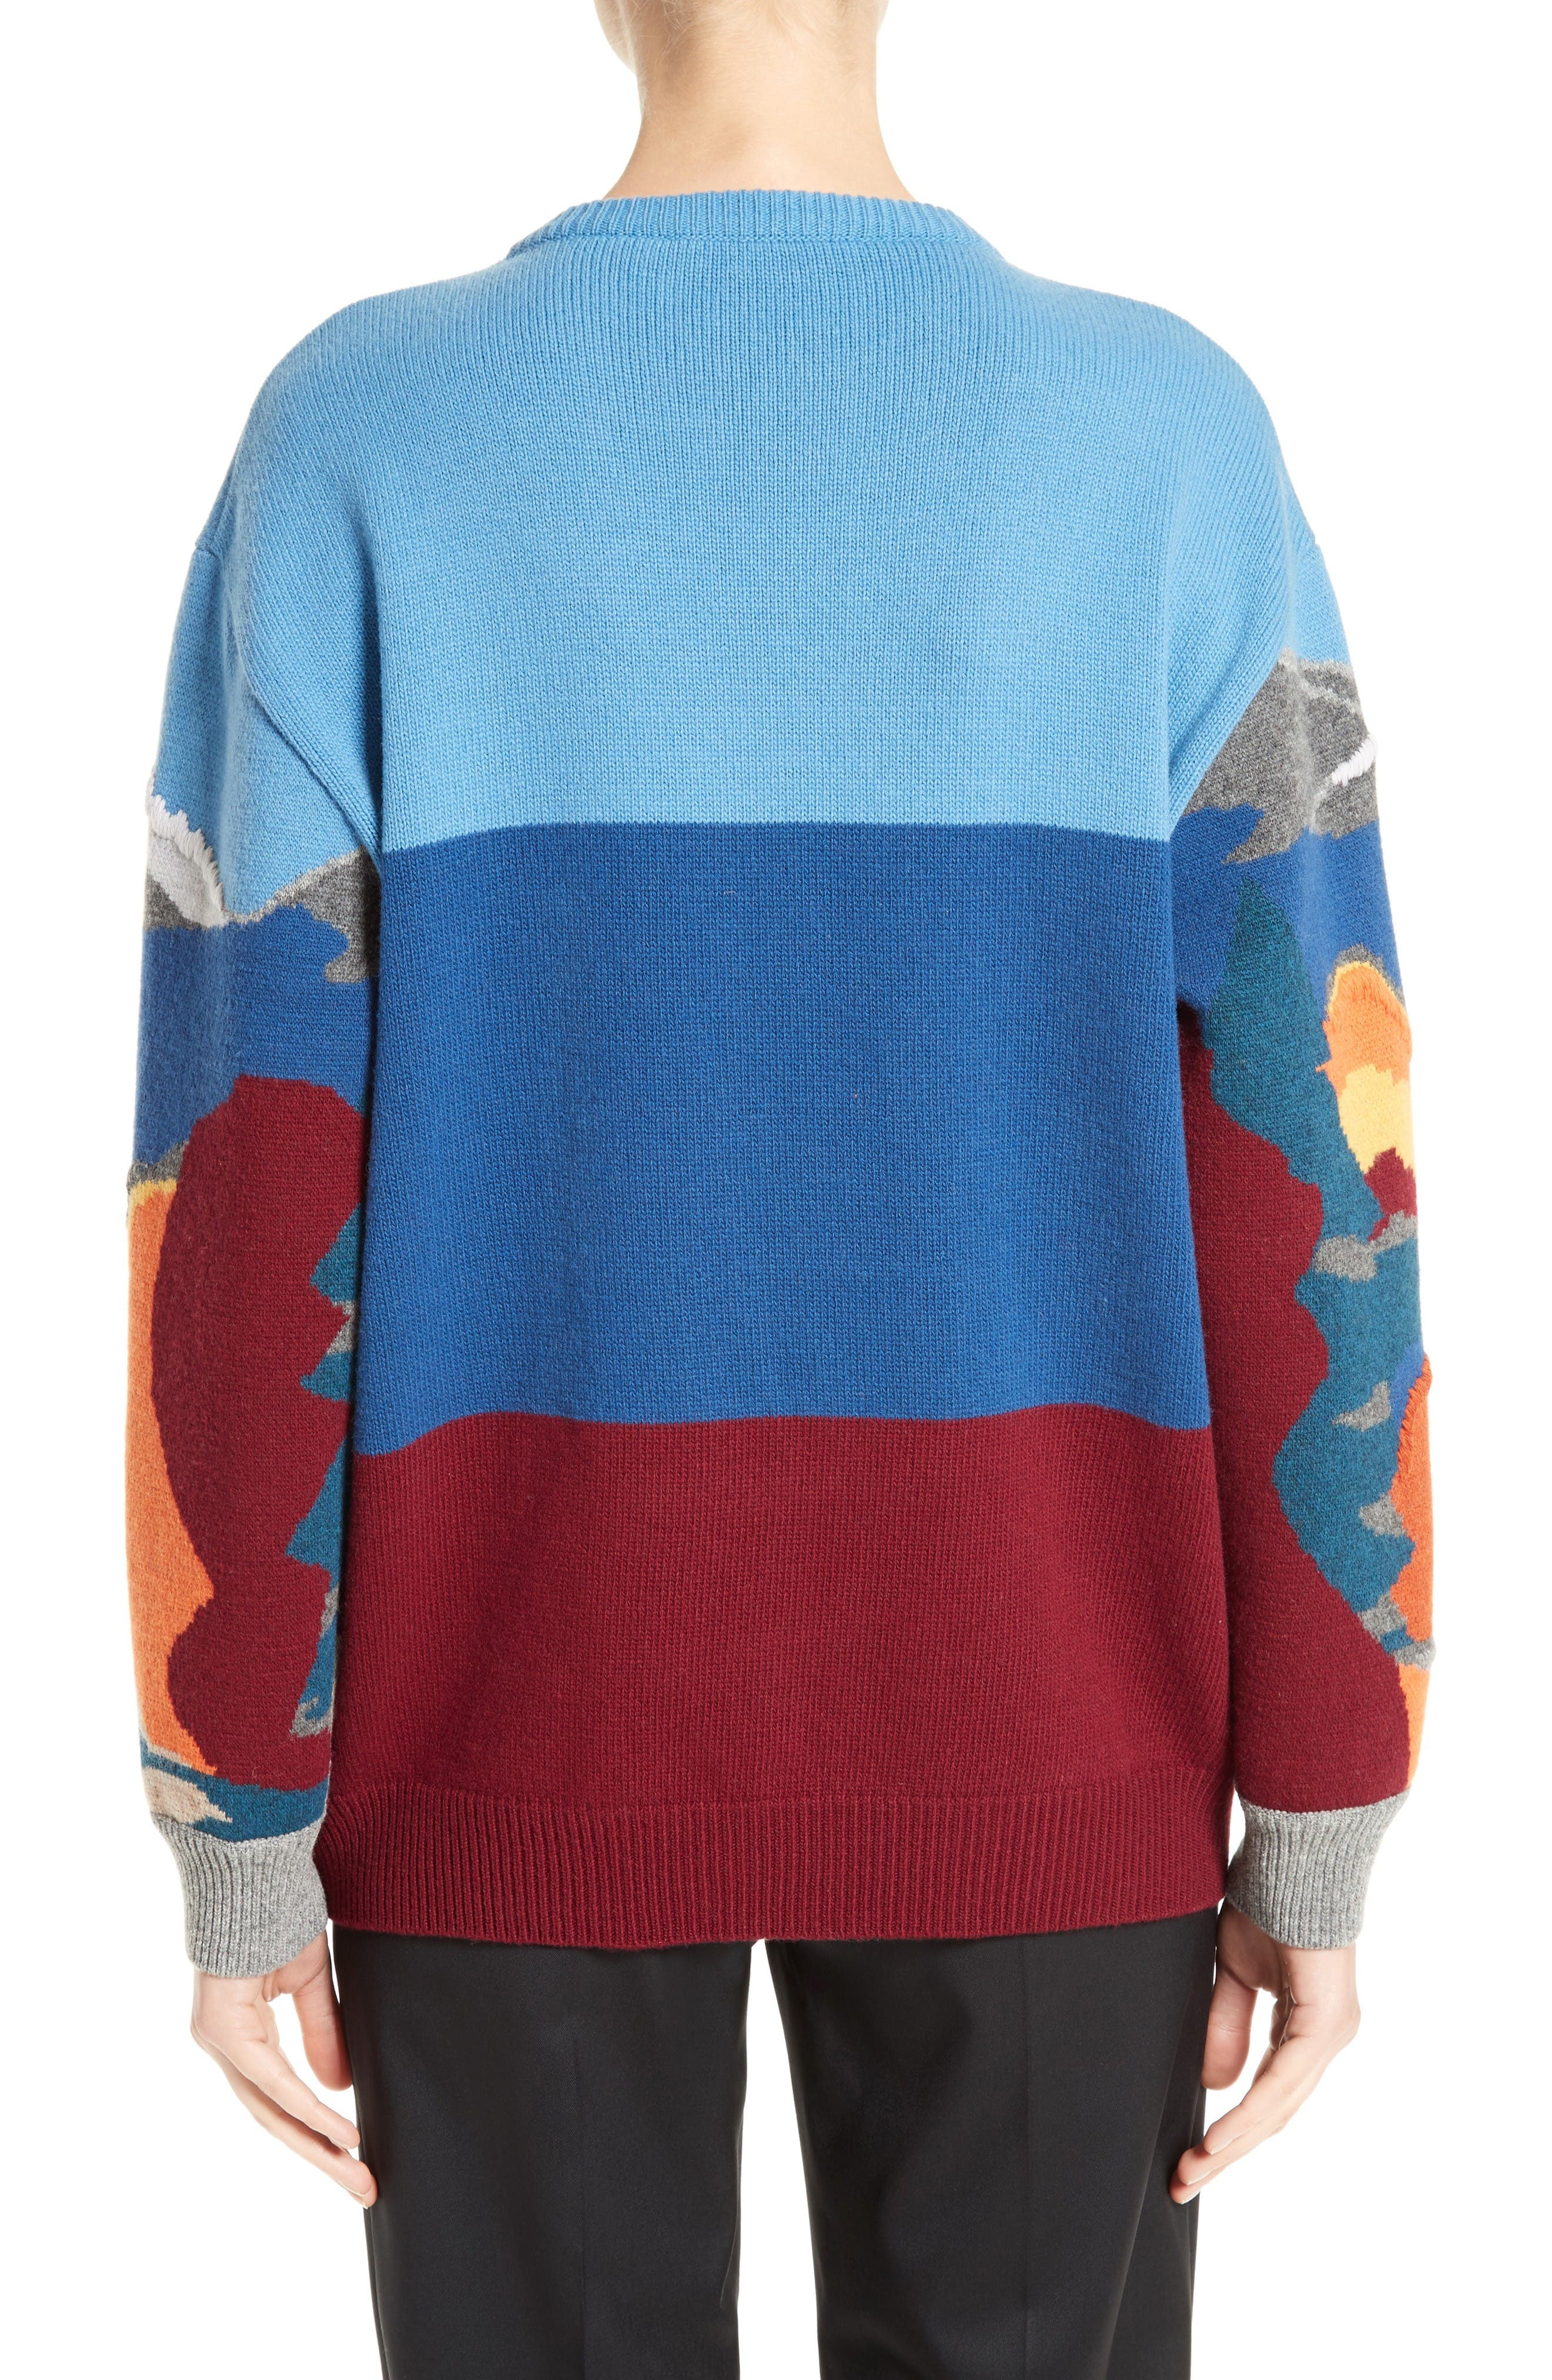 Alternate Image 2  - Stella McCartney 'Landscape' Intarsia Knit Wool Sweater